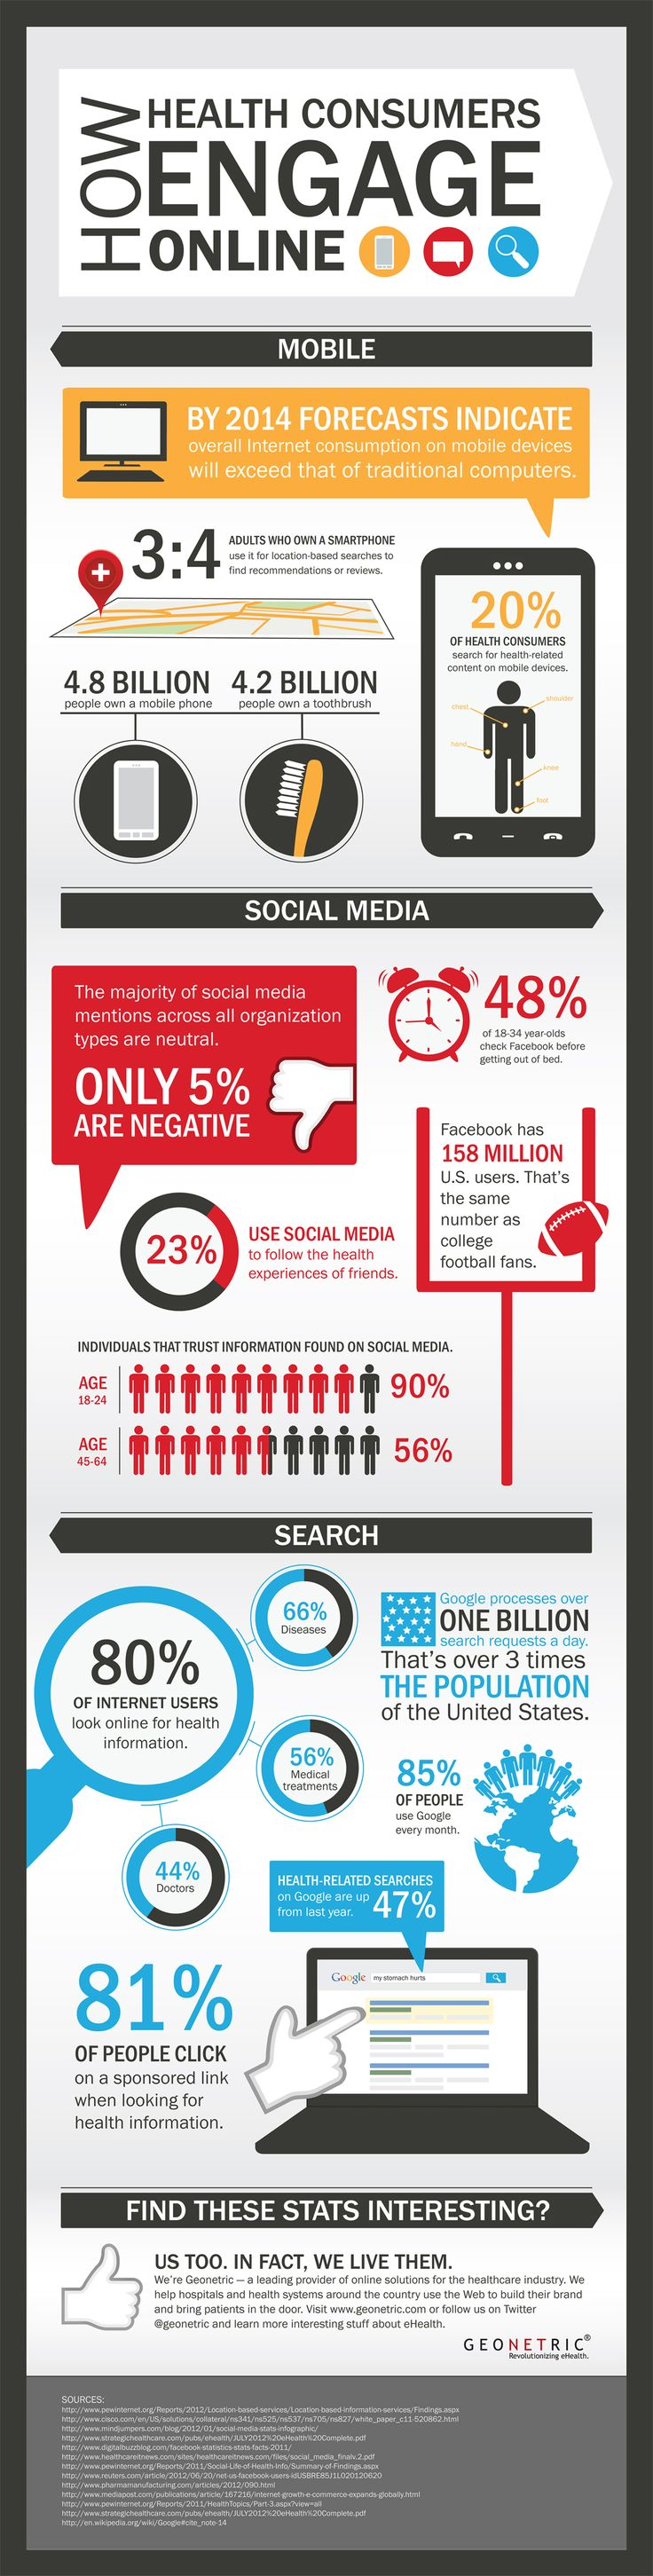 The fact is today's mobile, social and search trends are indicative of the growing role digital connectivity plays in our lives. These three items have a profound impact on how health consumers find you online, research and evaluate treatment options, and take that critical step from being consumers to patients.